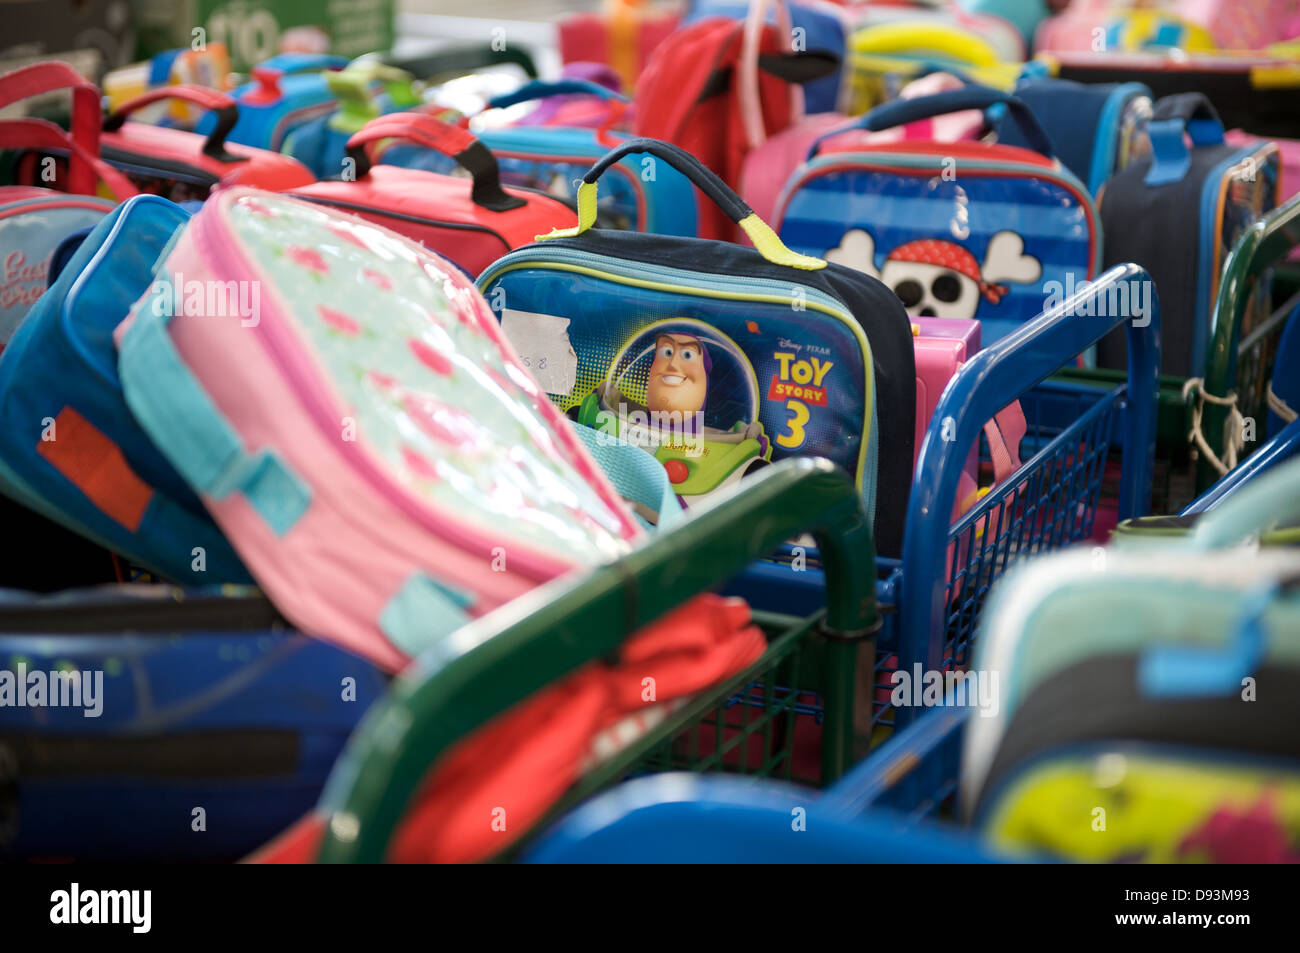 Piles of school lunch boxes in a primary school canteen - Stock Image